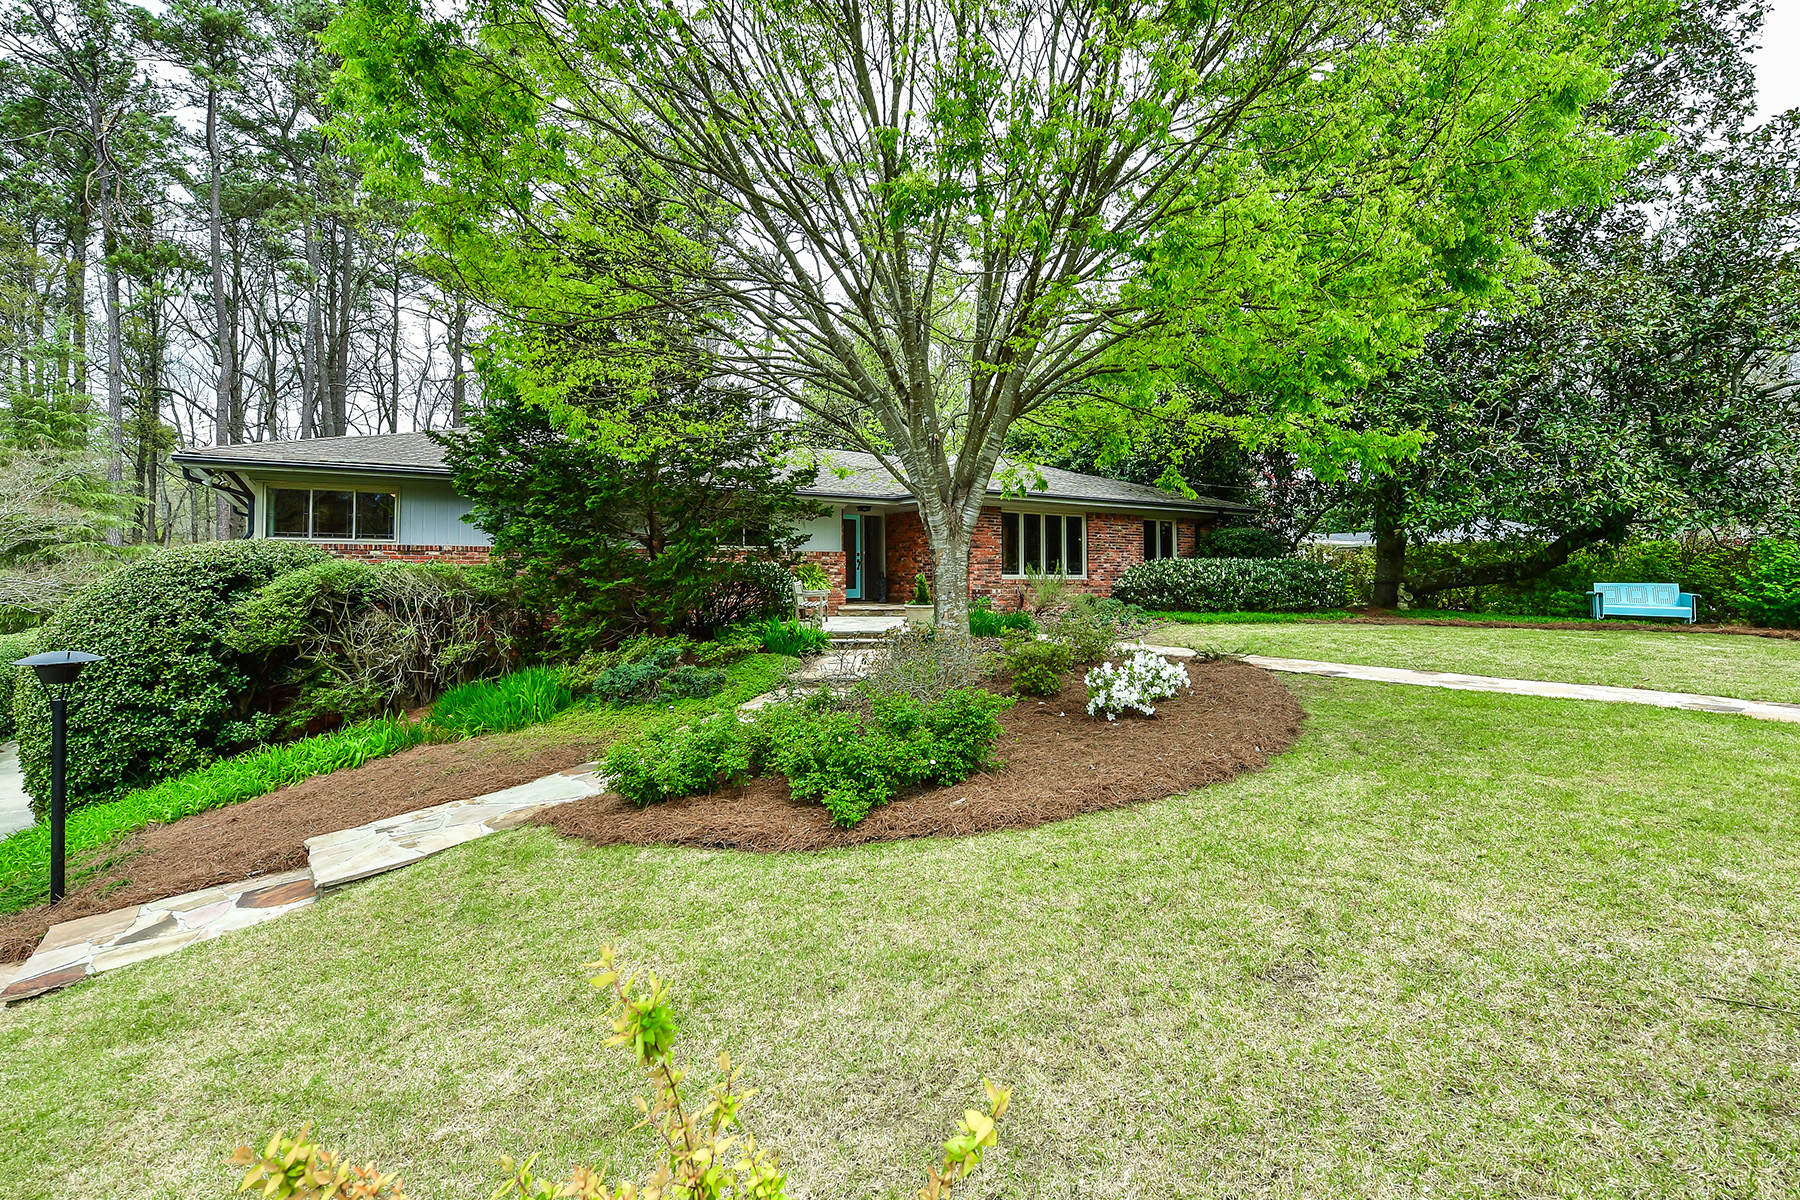 Single Family Home for Sale at Mid-Century Modern on Morningside Cul-de-sac 1054 Robin Ln Atlanta, Georgia 30306 United States